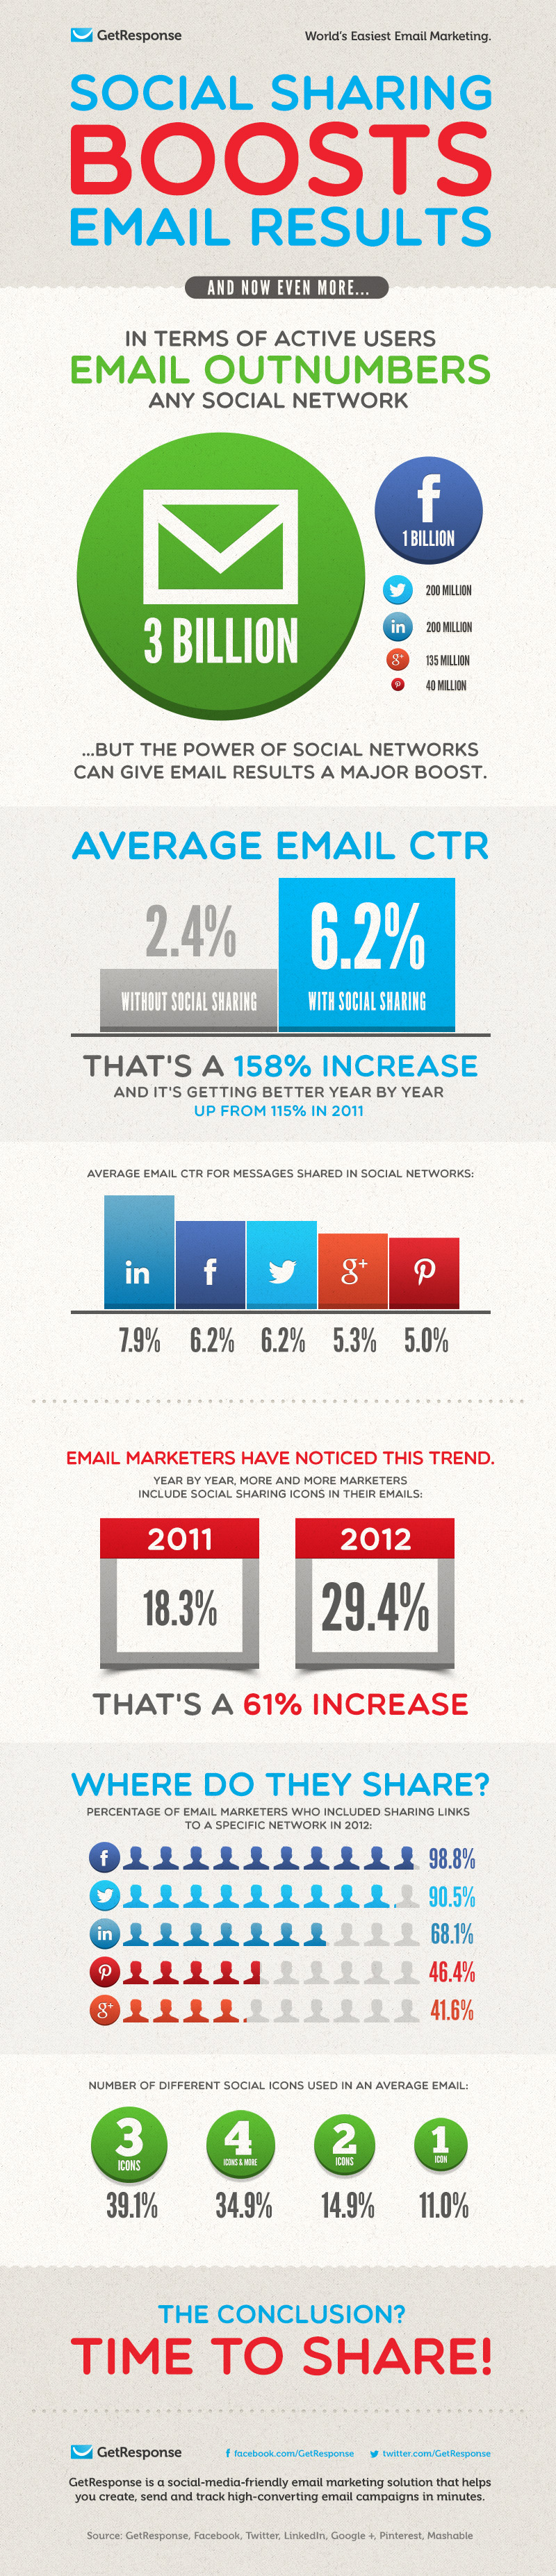 social-sharing-boosts-email